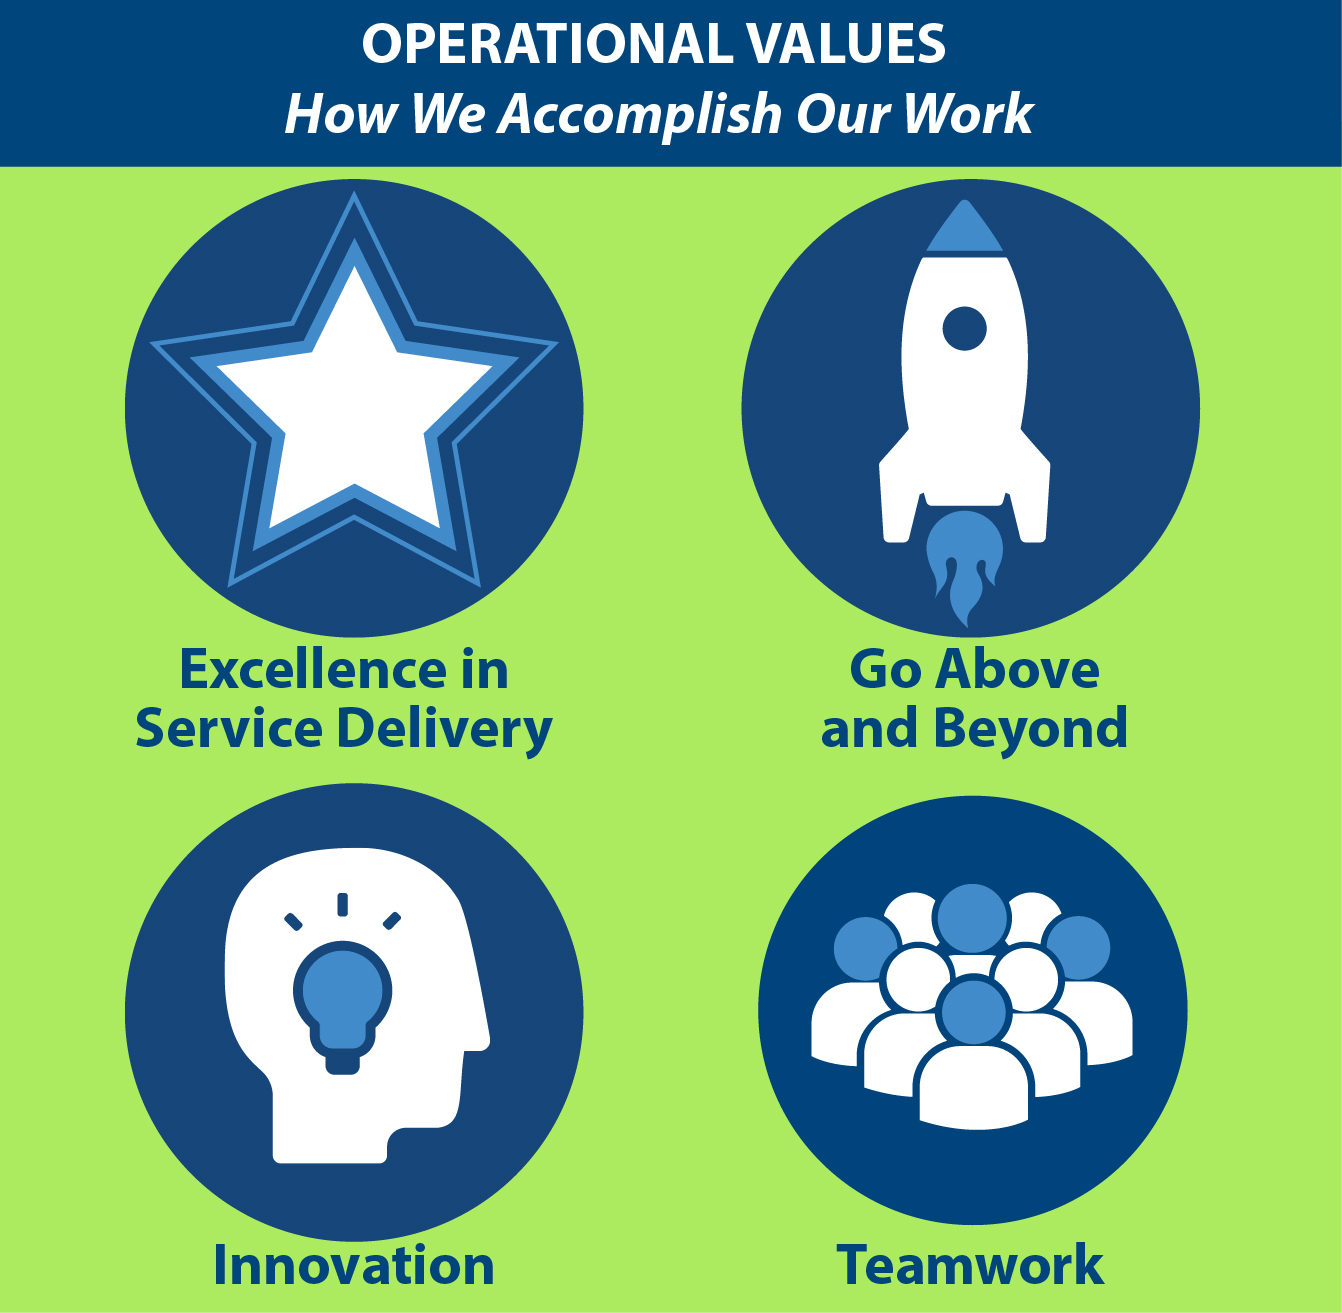 OPERATIONAL VALUES